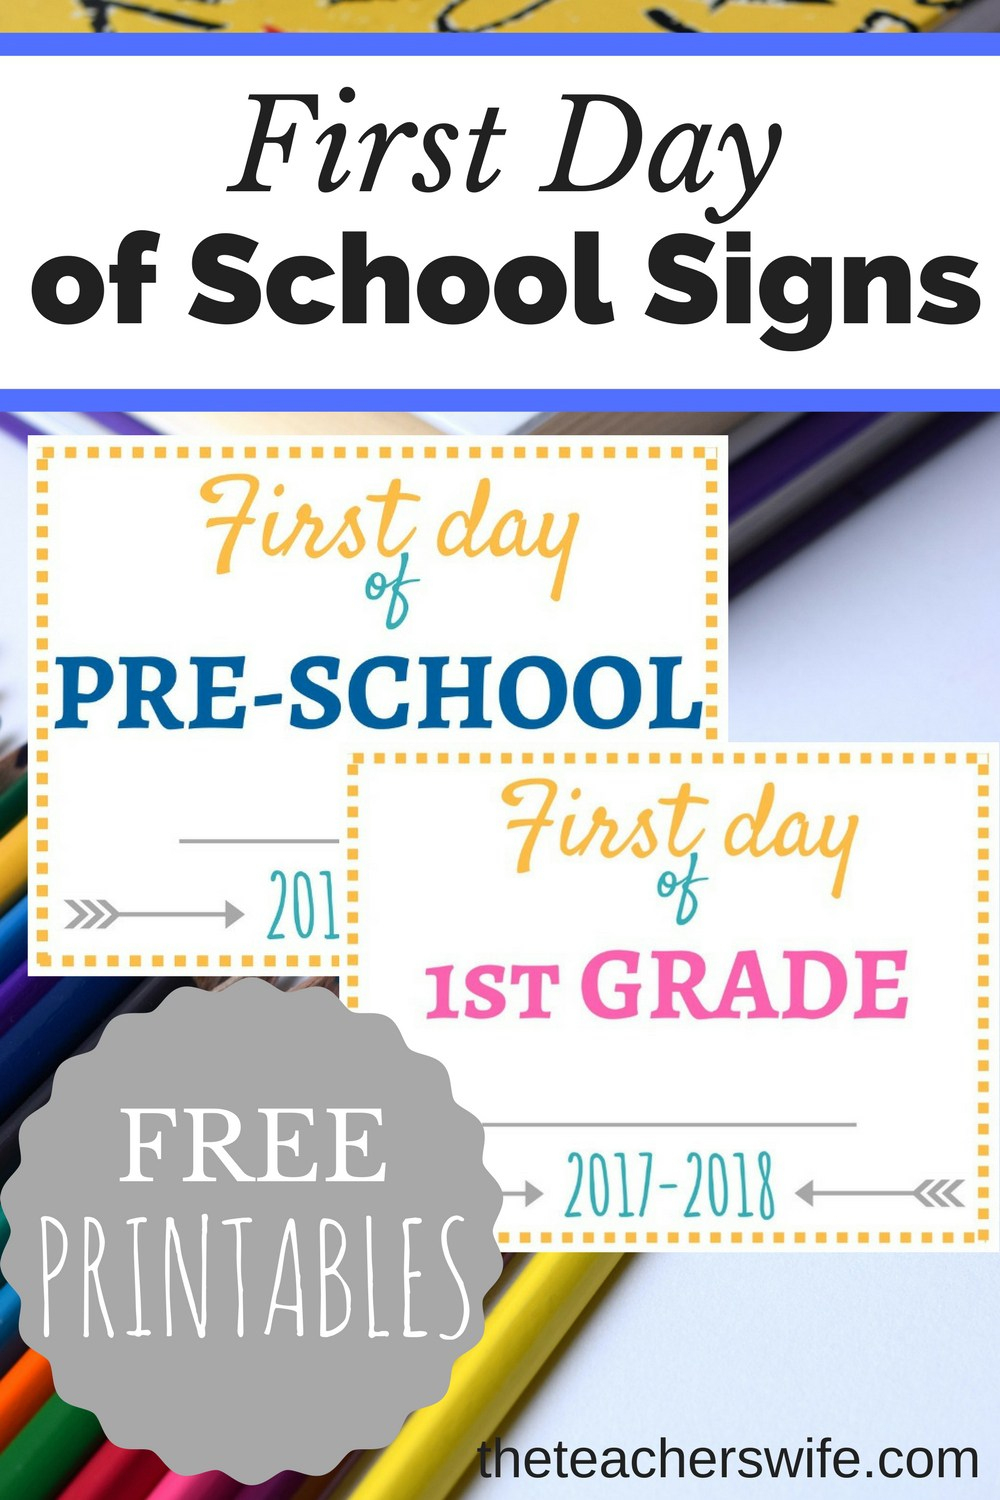 Free Printable First Day Of School Signs - Money Saving Mom® : Money - Free Printable First Day Of School Signs 2017